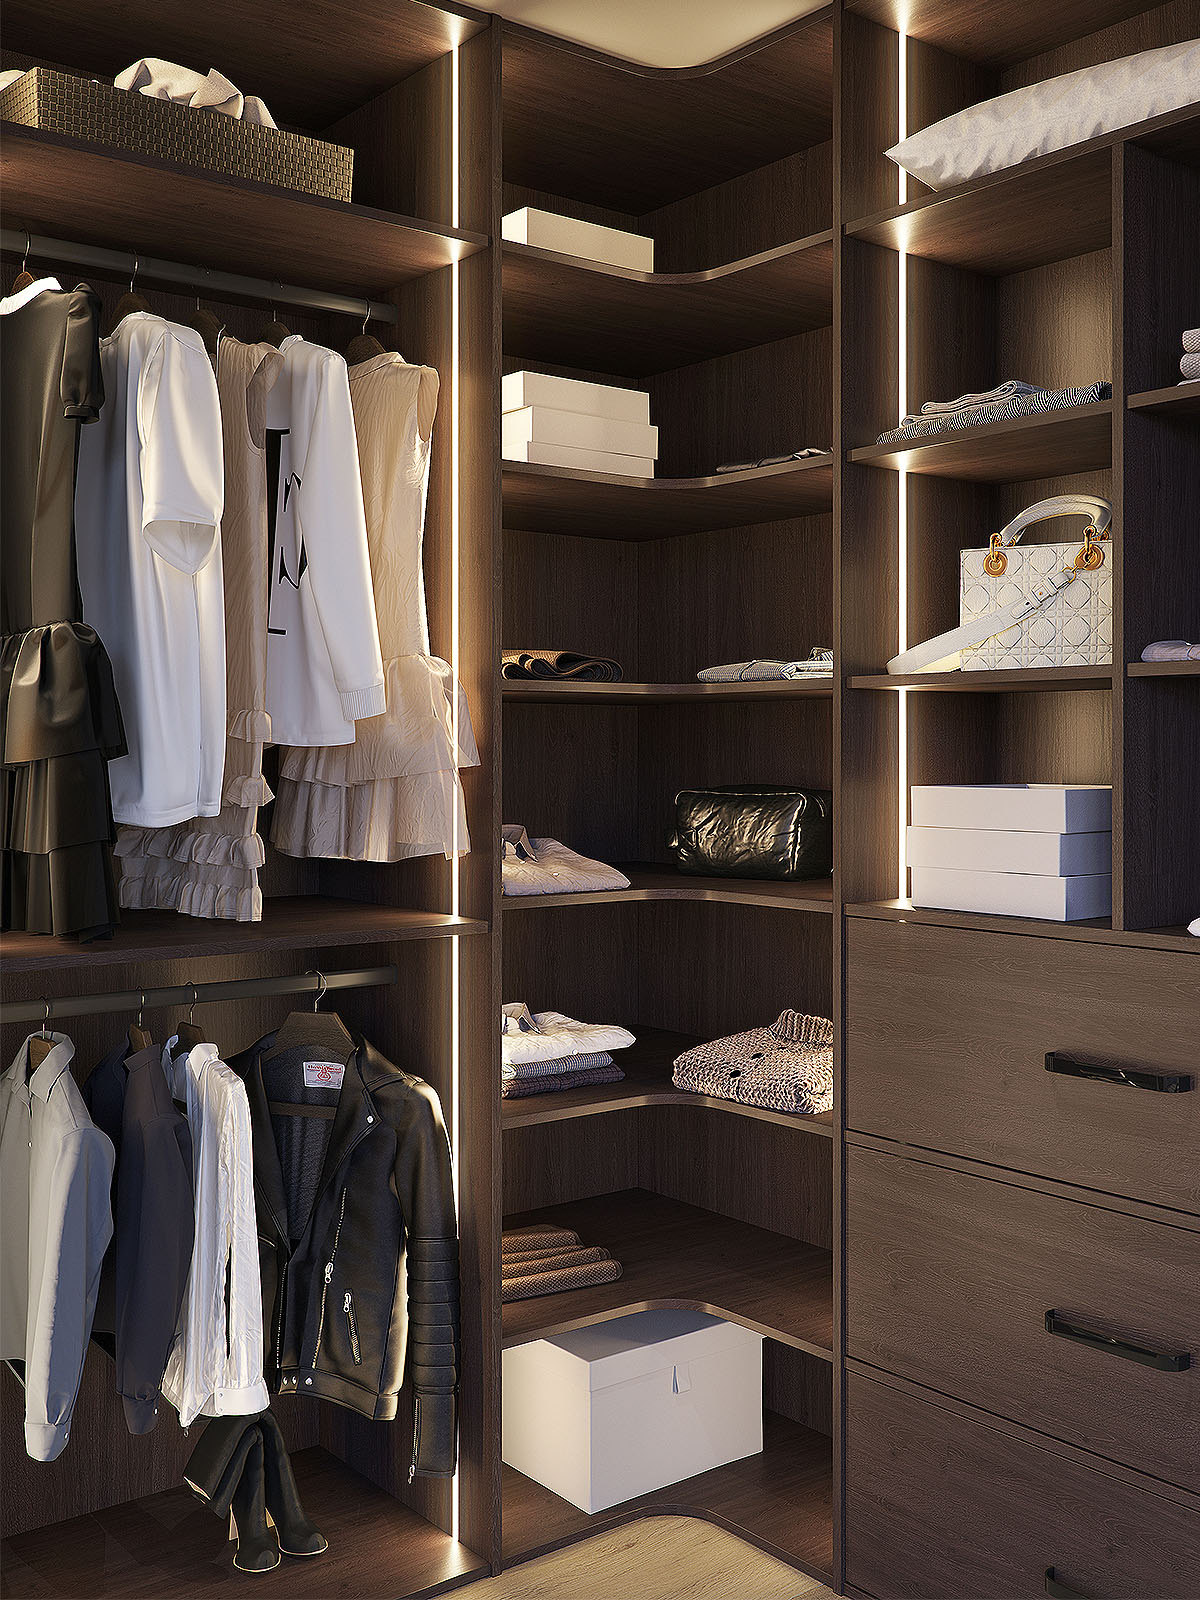 closet-with-clothes-wood-dark